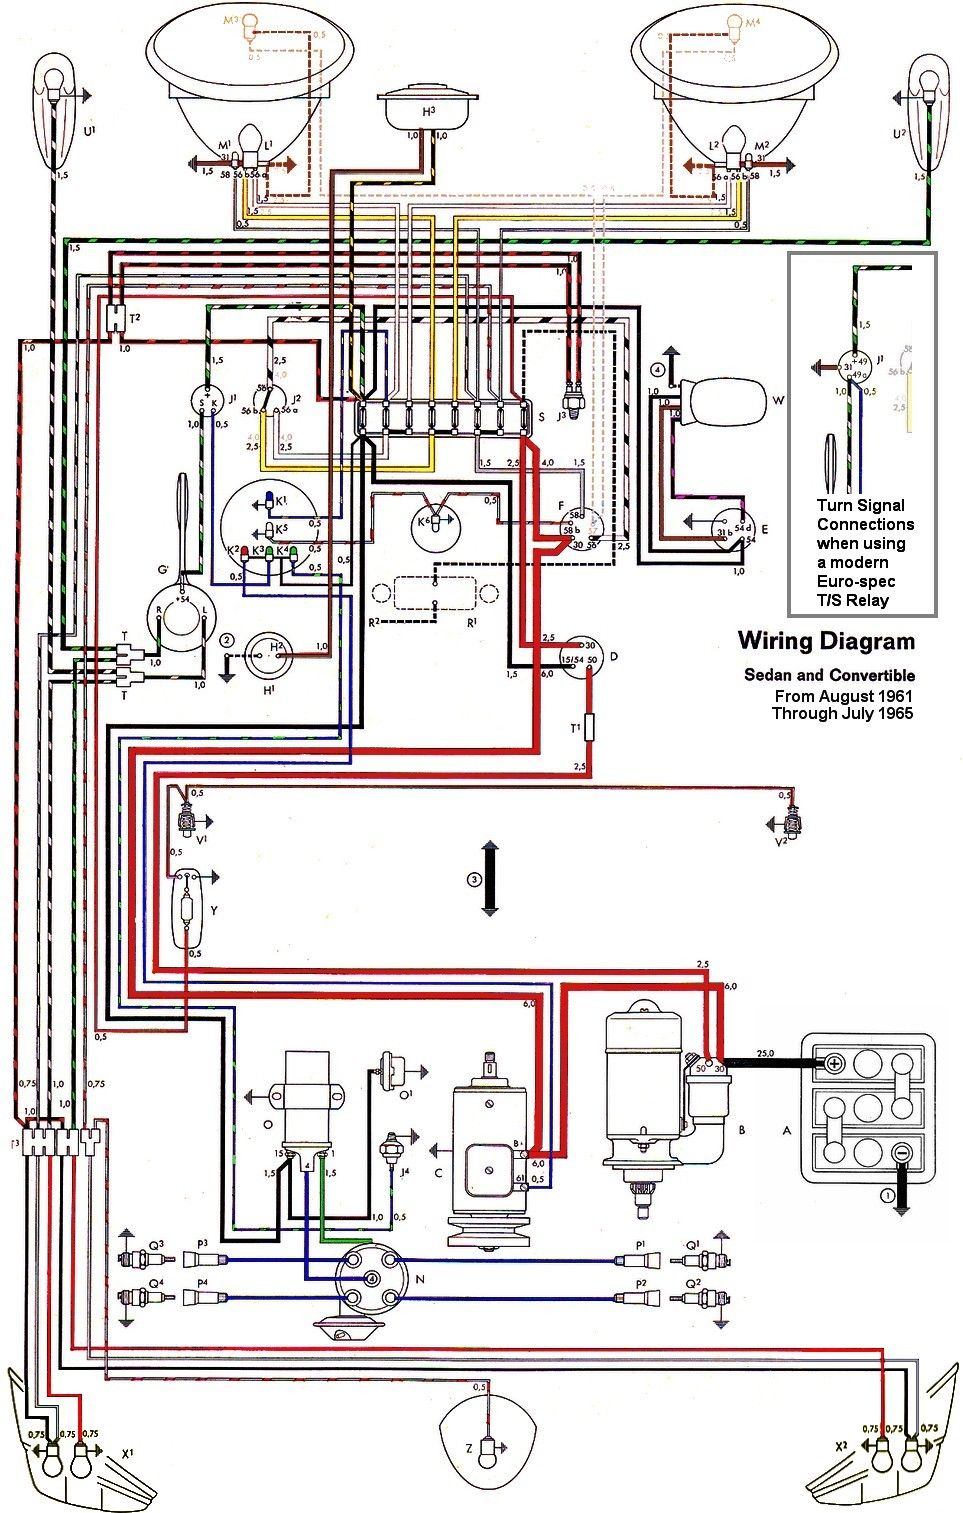 Vw Wiring Harness Diagram - wiring diagram on the net on